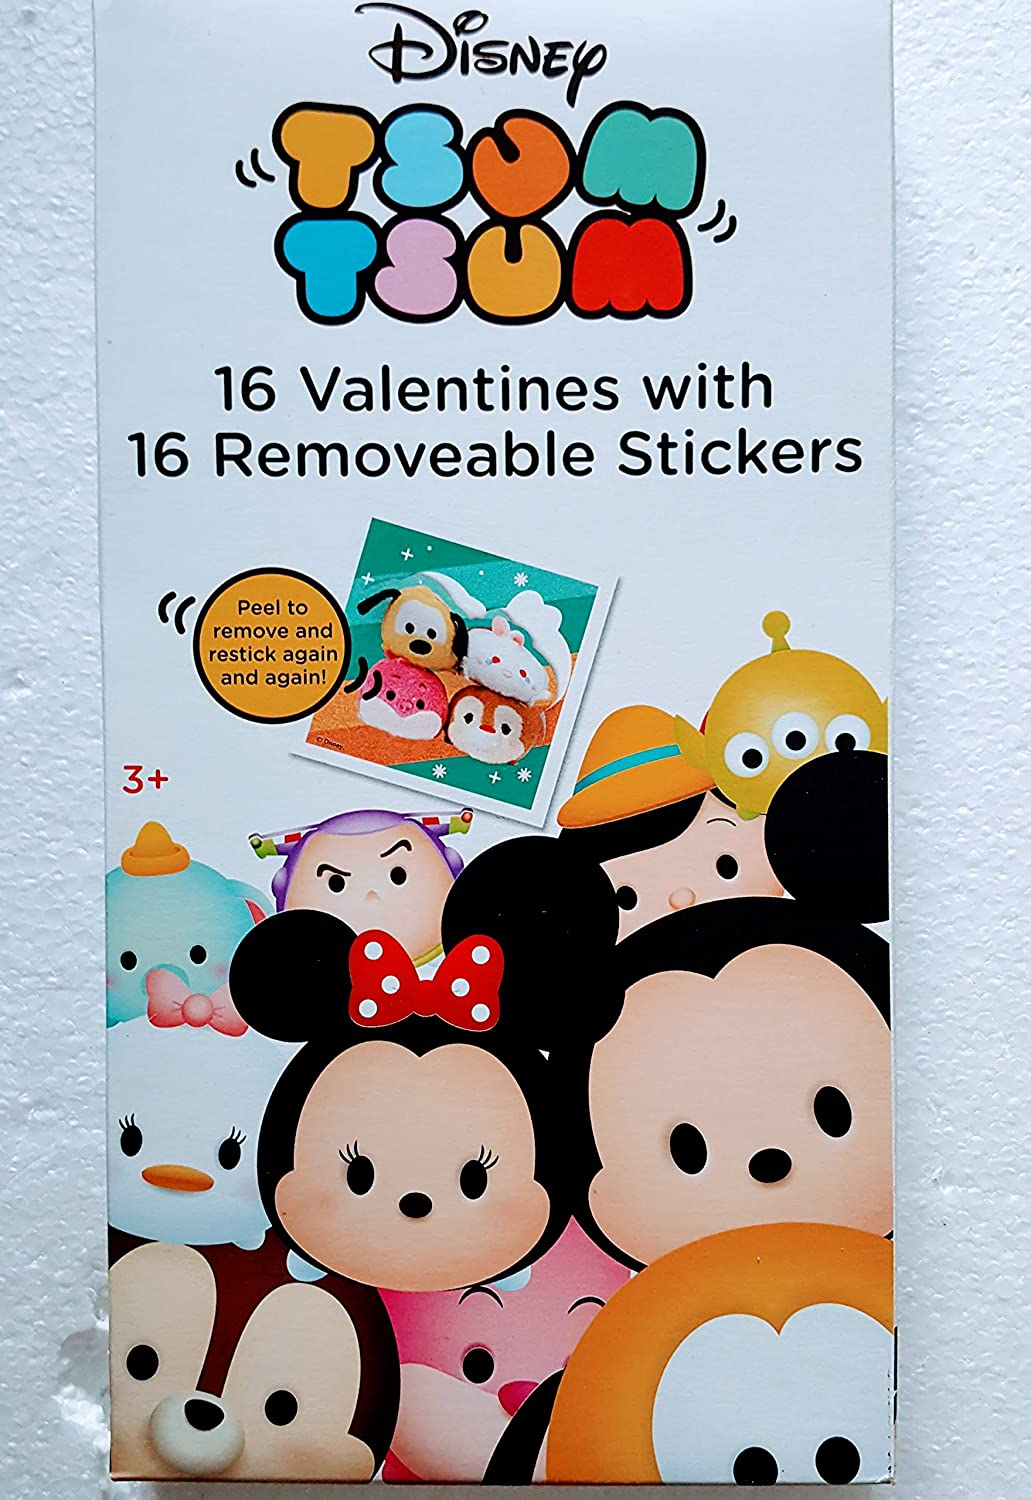 Disney Tsum Tsum 16 Valentines with 16 Removable Stickers ok to Peel to Remove and restick Again and Again